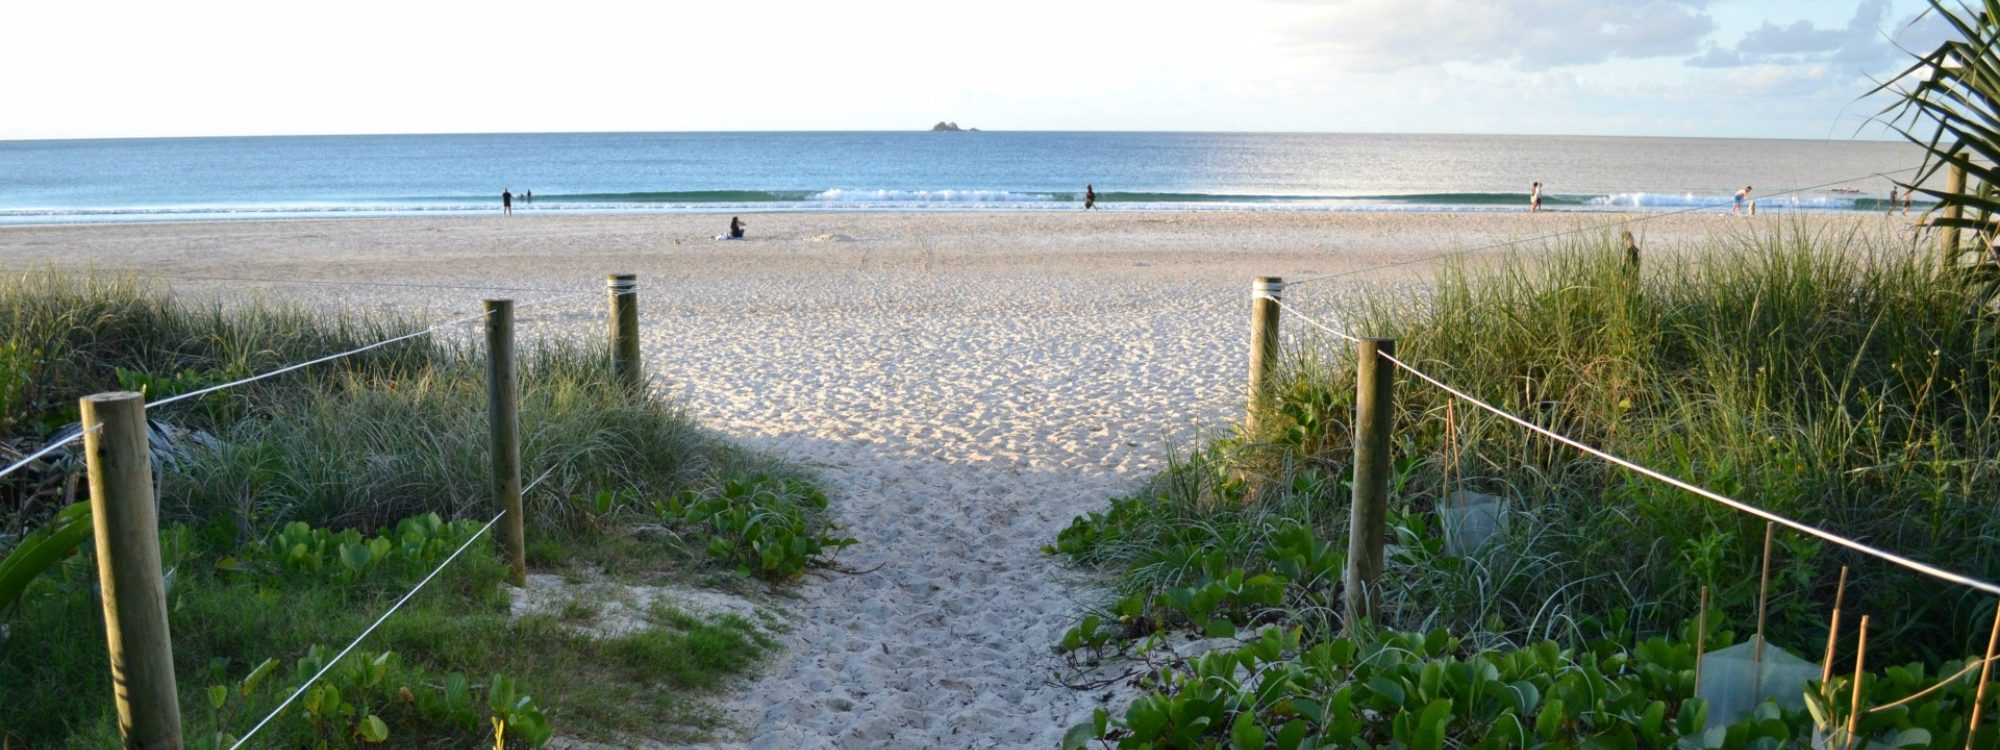 ByronÔÇÖs famous Clarkes Beach is just a 3 minute drive from The Lily Pad along scenic Skinners Shoot Rd.